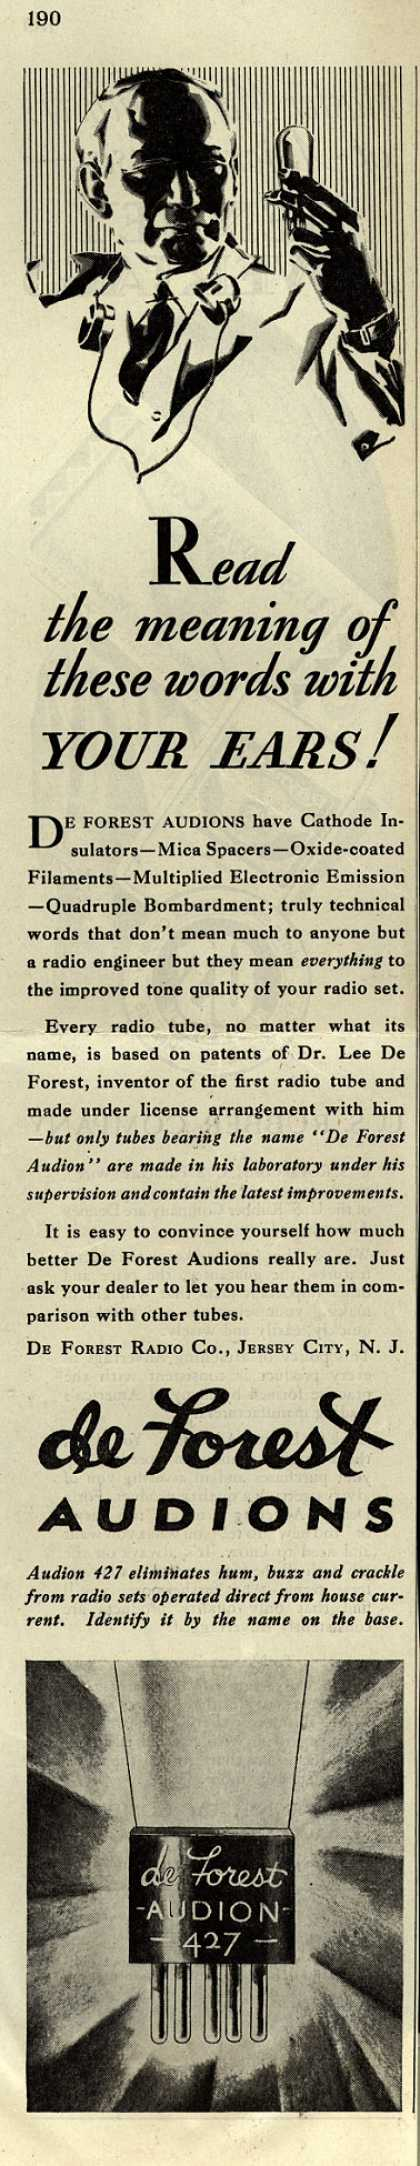 De Forest Audion's Audions – Read the meaning of these words with YOUR EARS (1929)